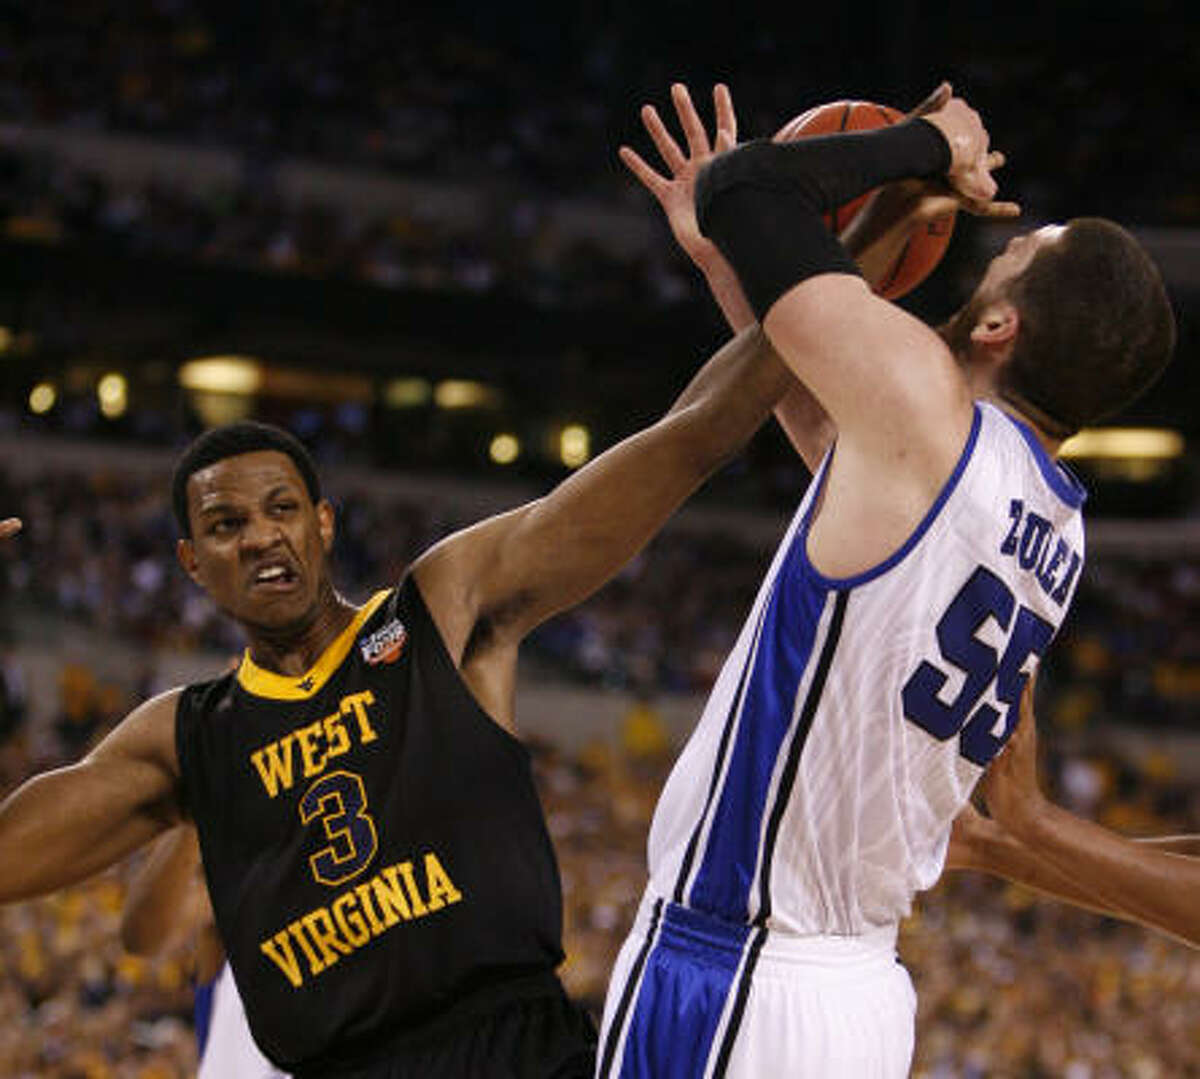 April 3: Duke 78, West Virginia 57 Duke center Brian Zoubek, right, and West Virginia forward Devin Ebanks battle for a loose ball in the first half.